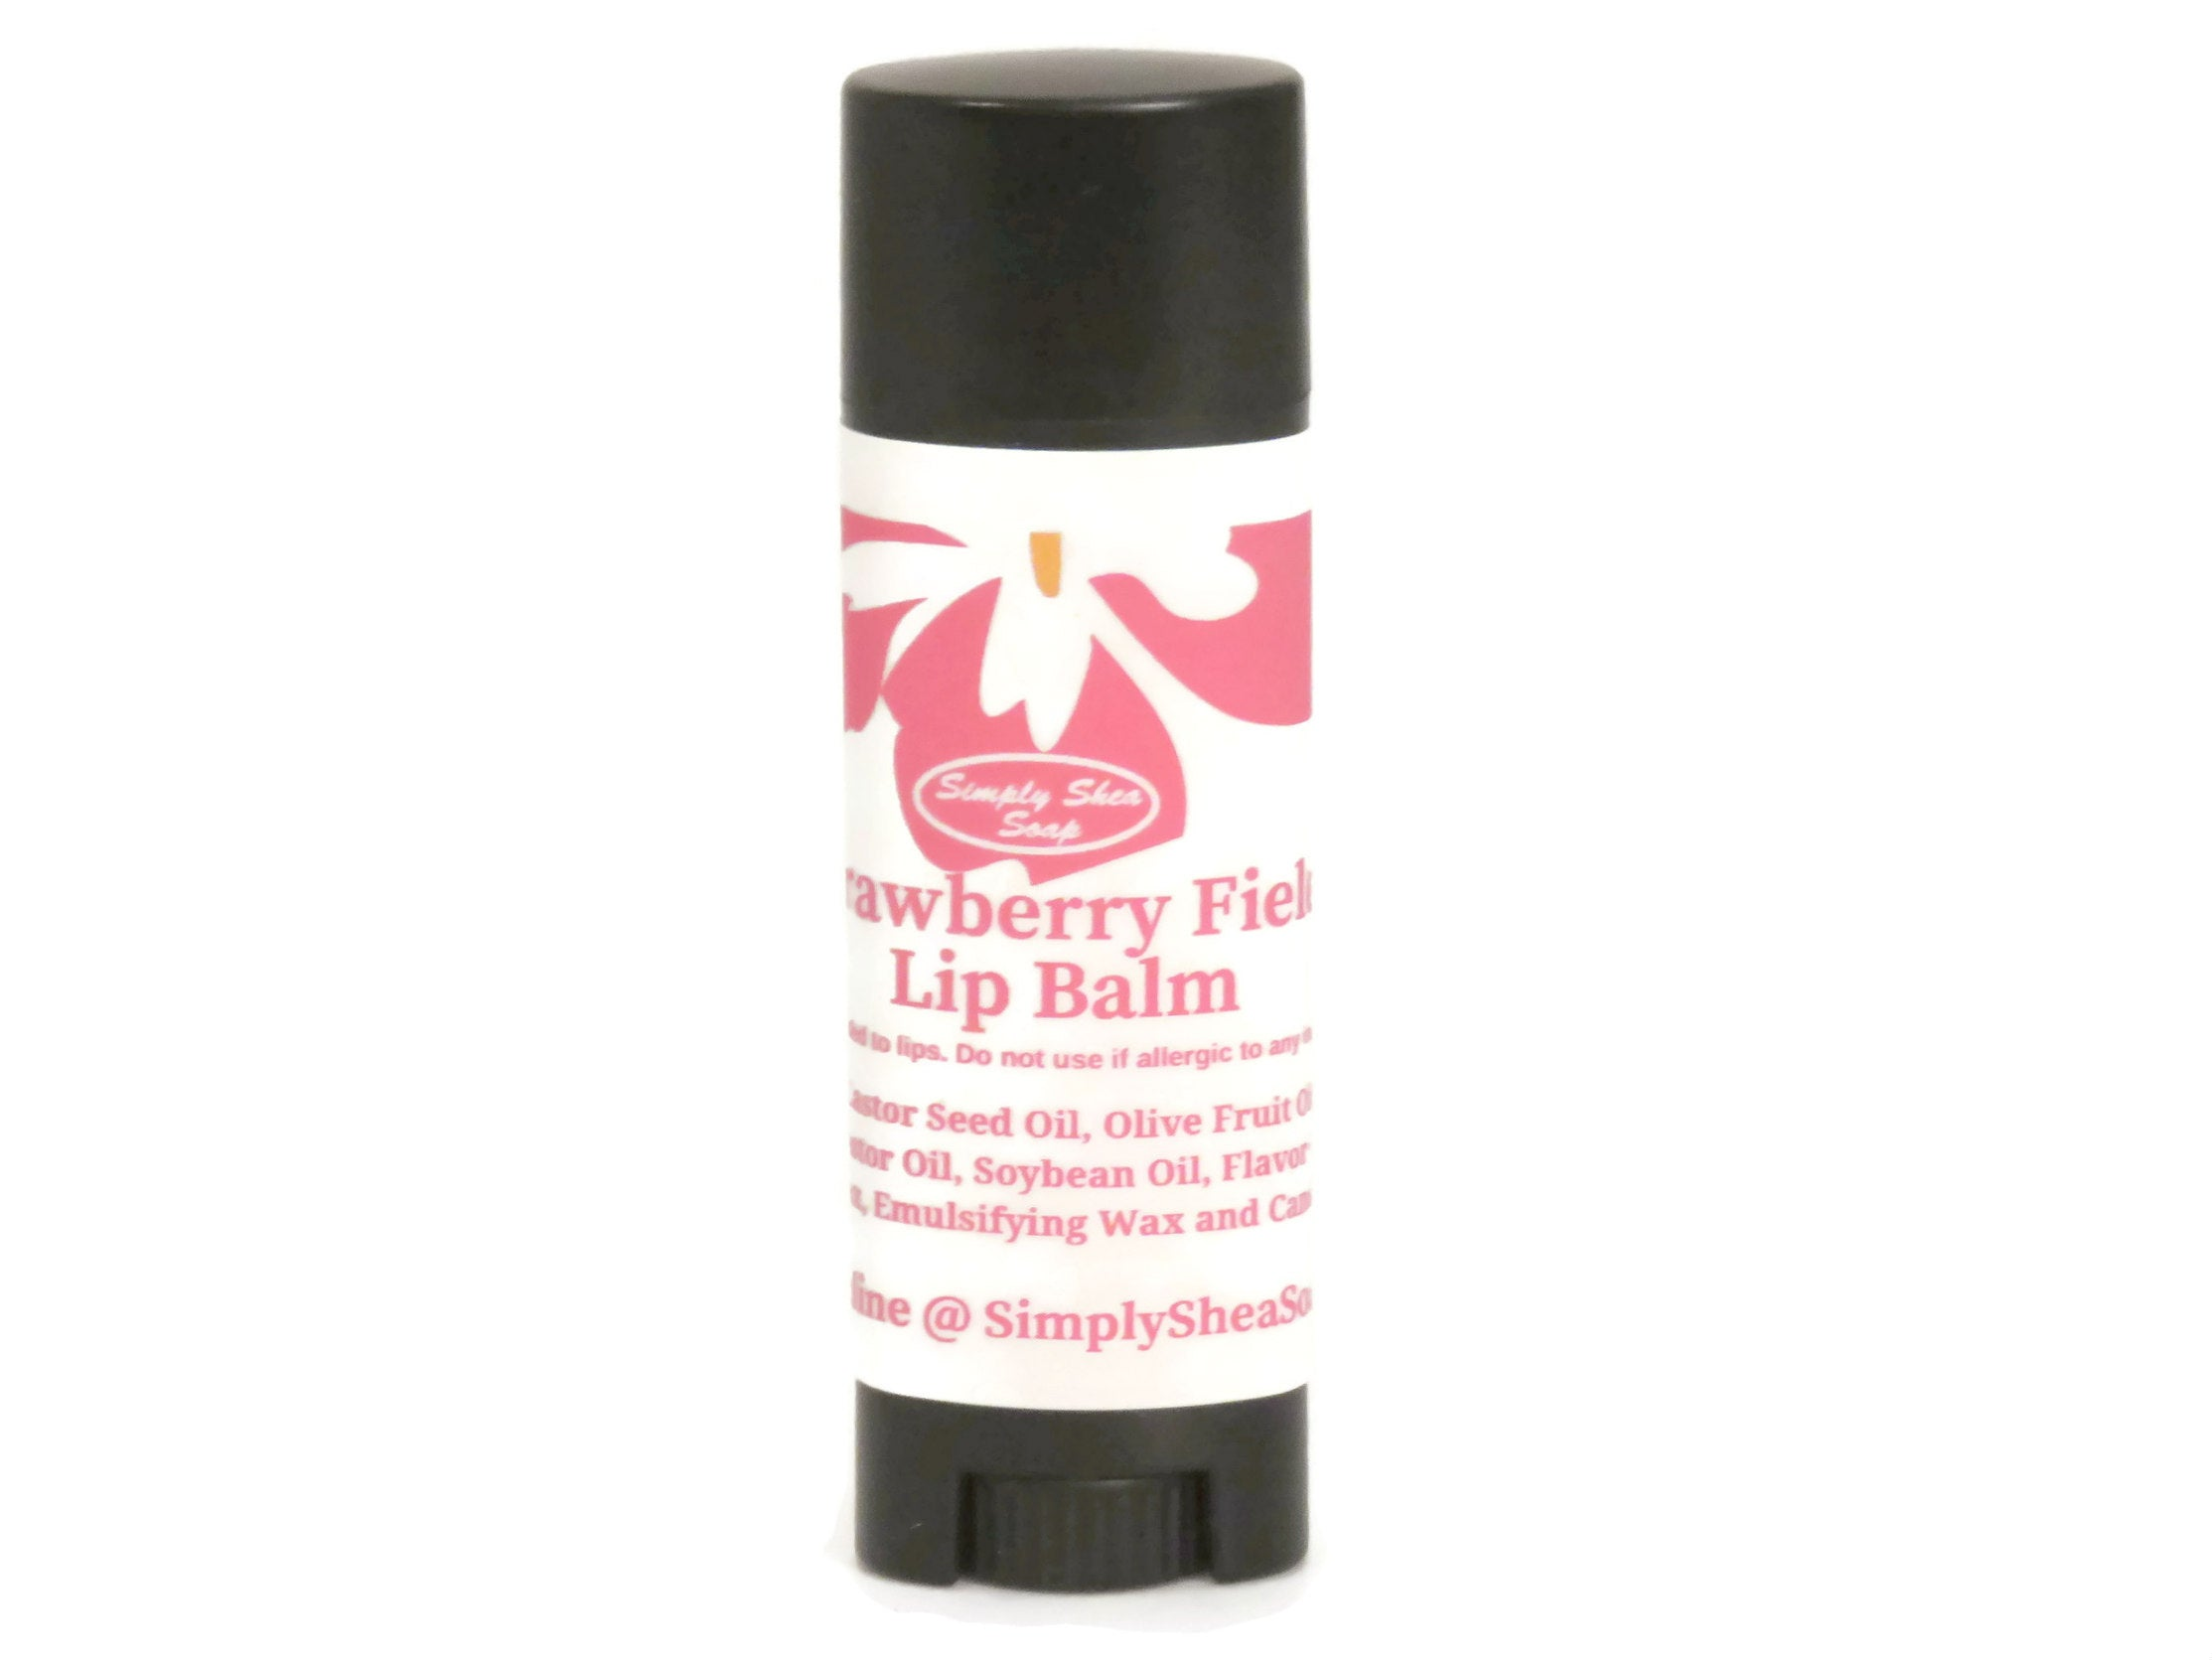 Strawberry Fields Lip balm with Organic Argan Oil